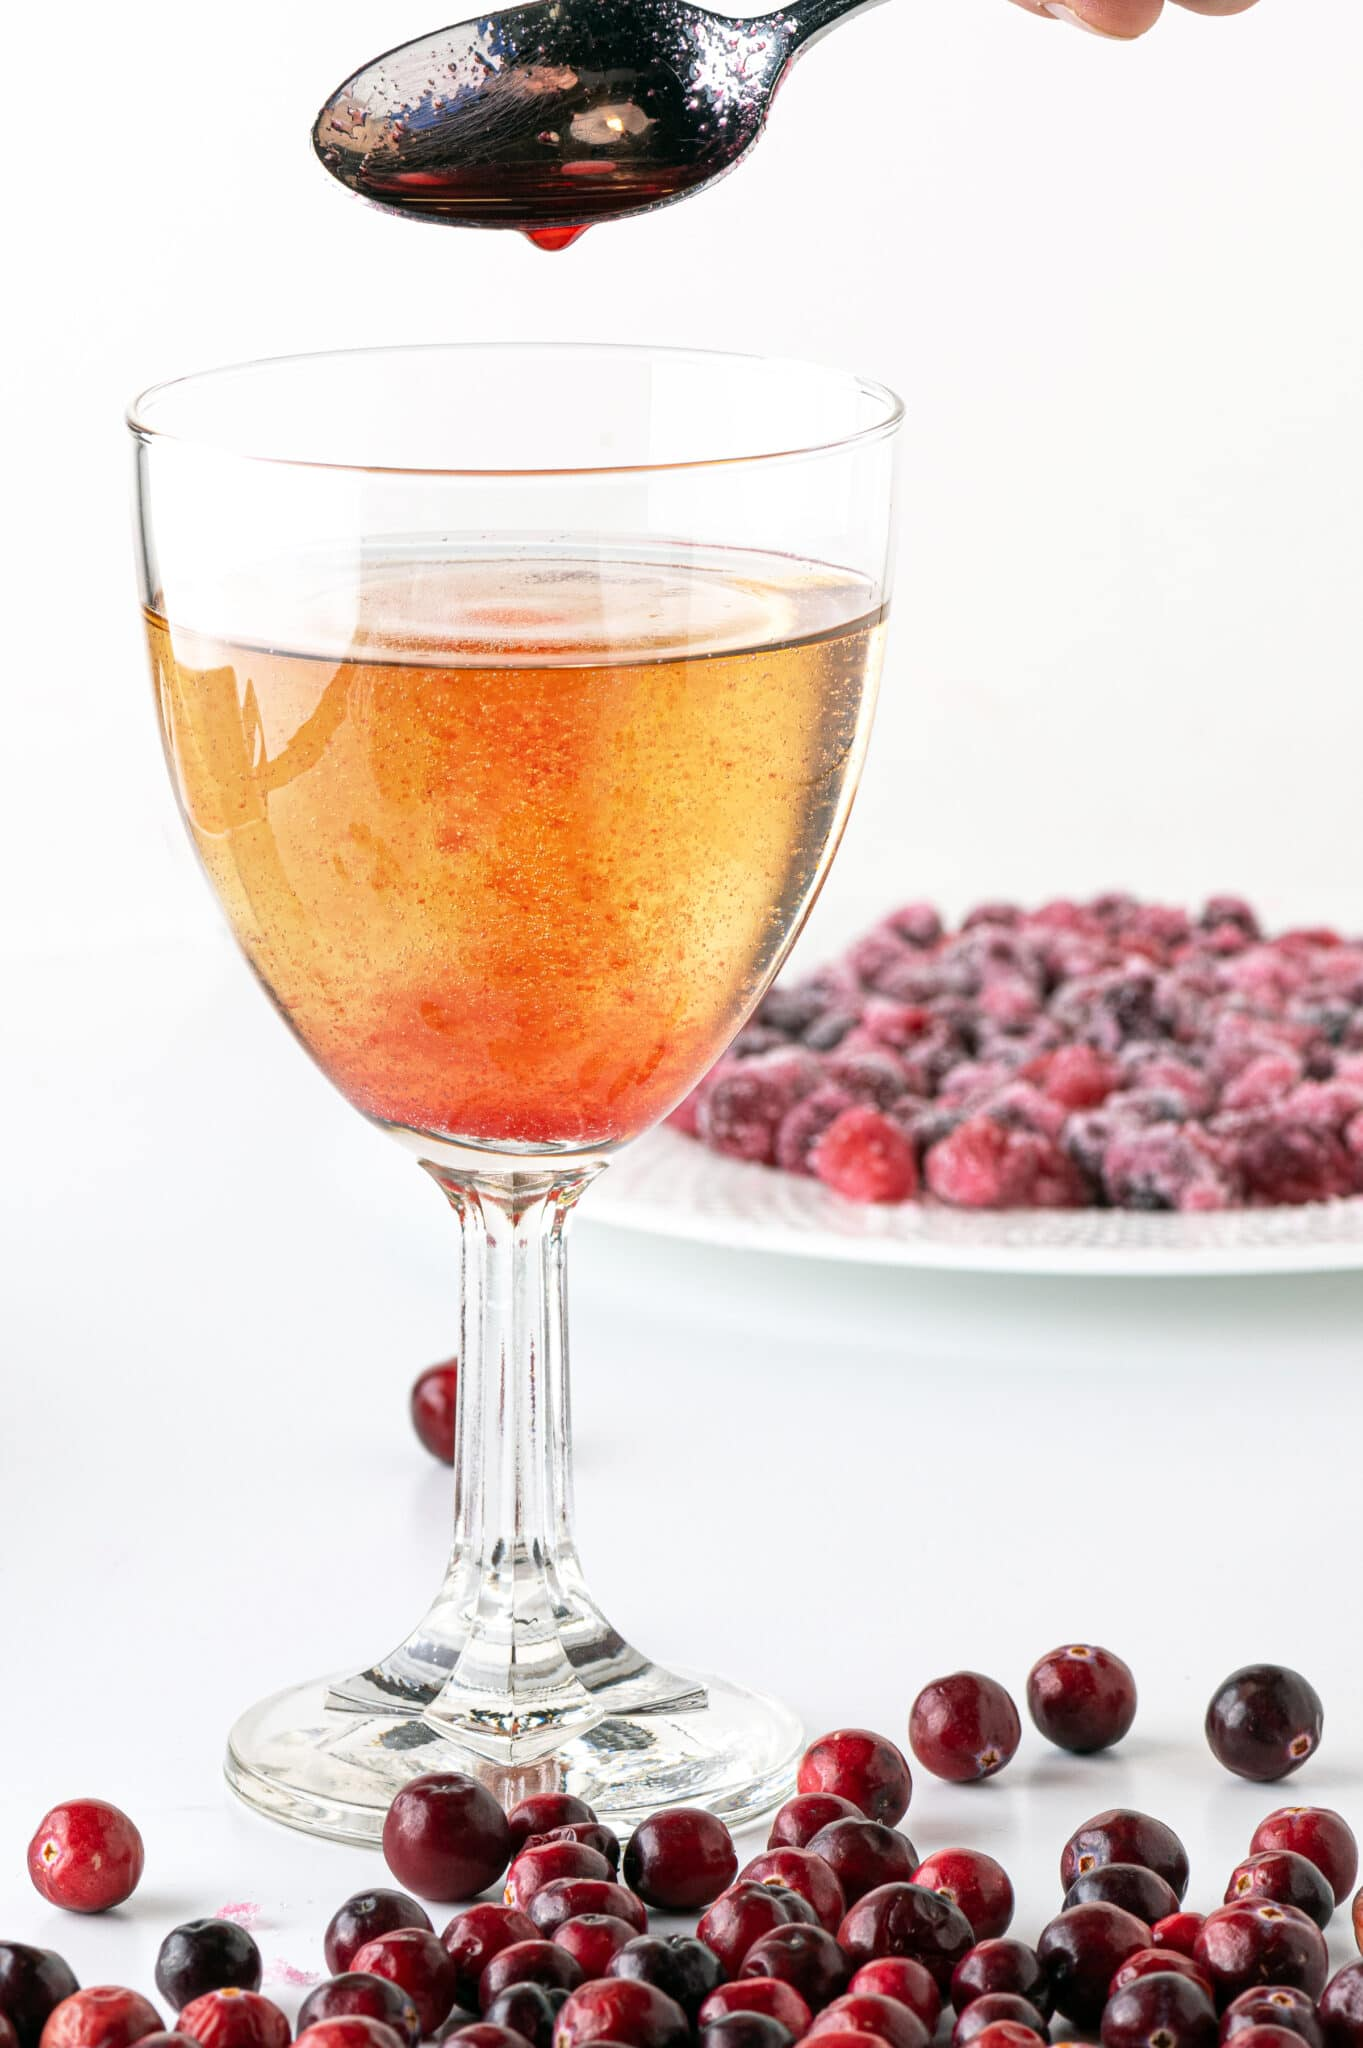 A golden beverage in a wine glass with a stream of cranberry syrup being poured in.   A dish of sugar-free candied cranberries are in the background with fresh ripe cranberries in the foreground.